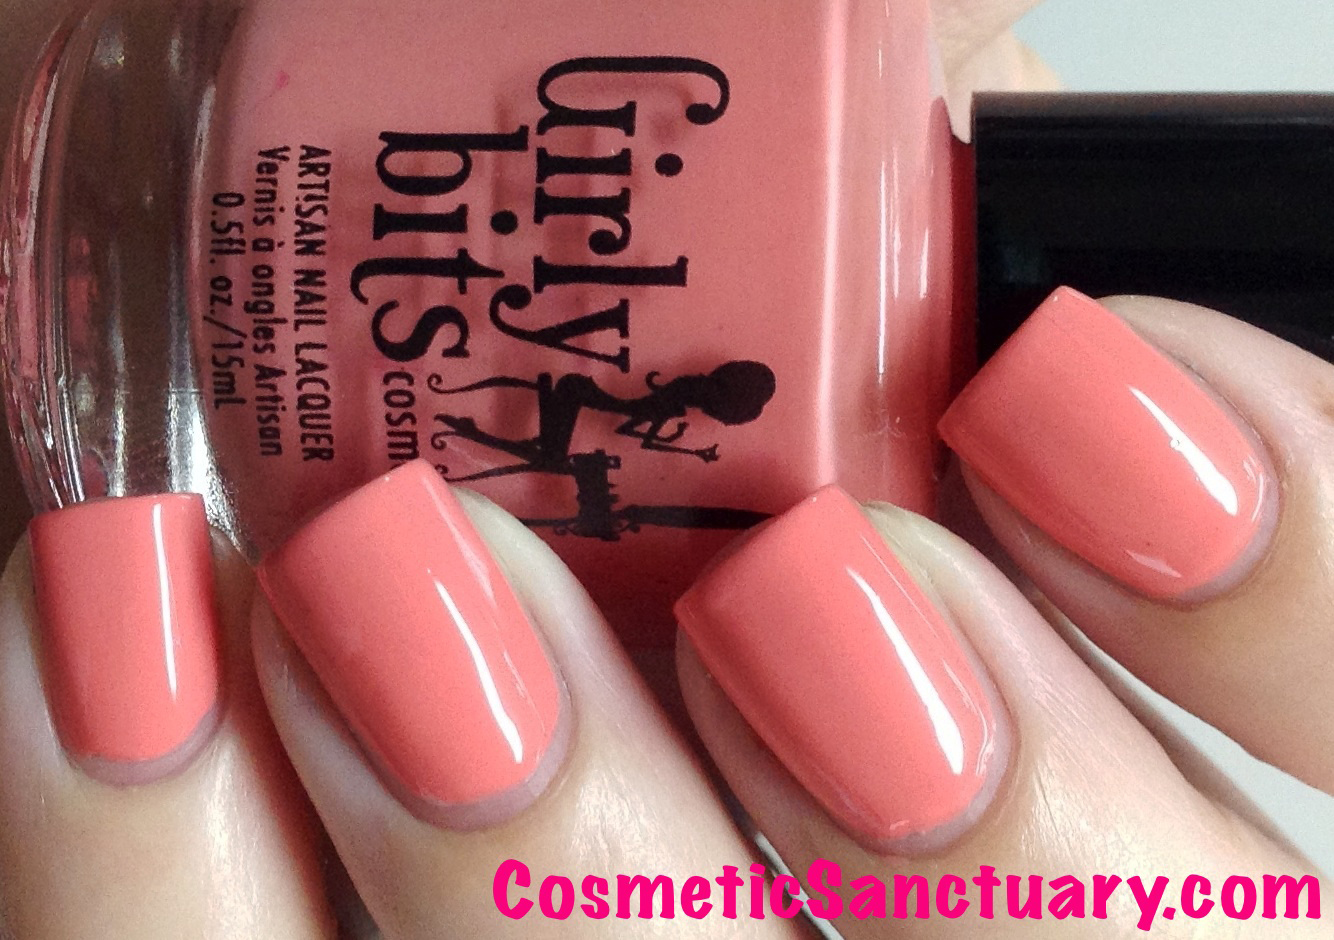 girly-bits-lover-s-coral-full-cosmetic-sanctuary.jpg